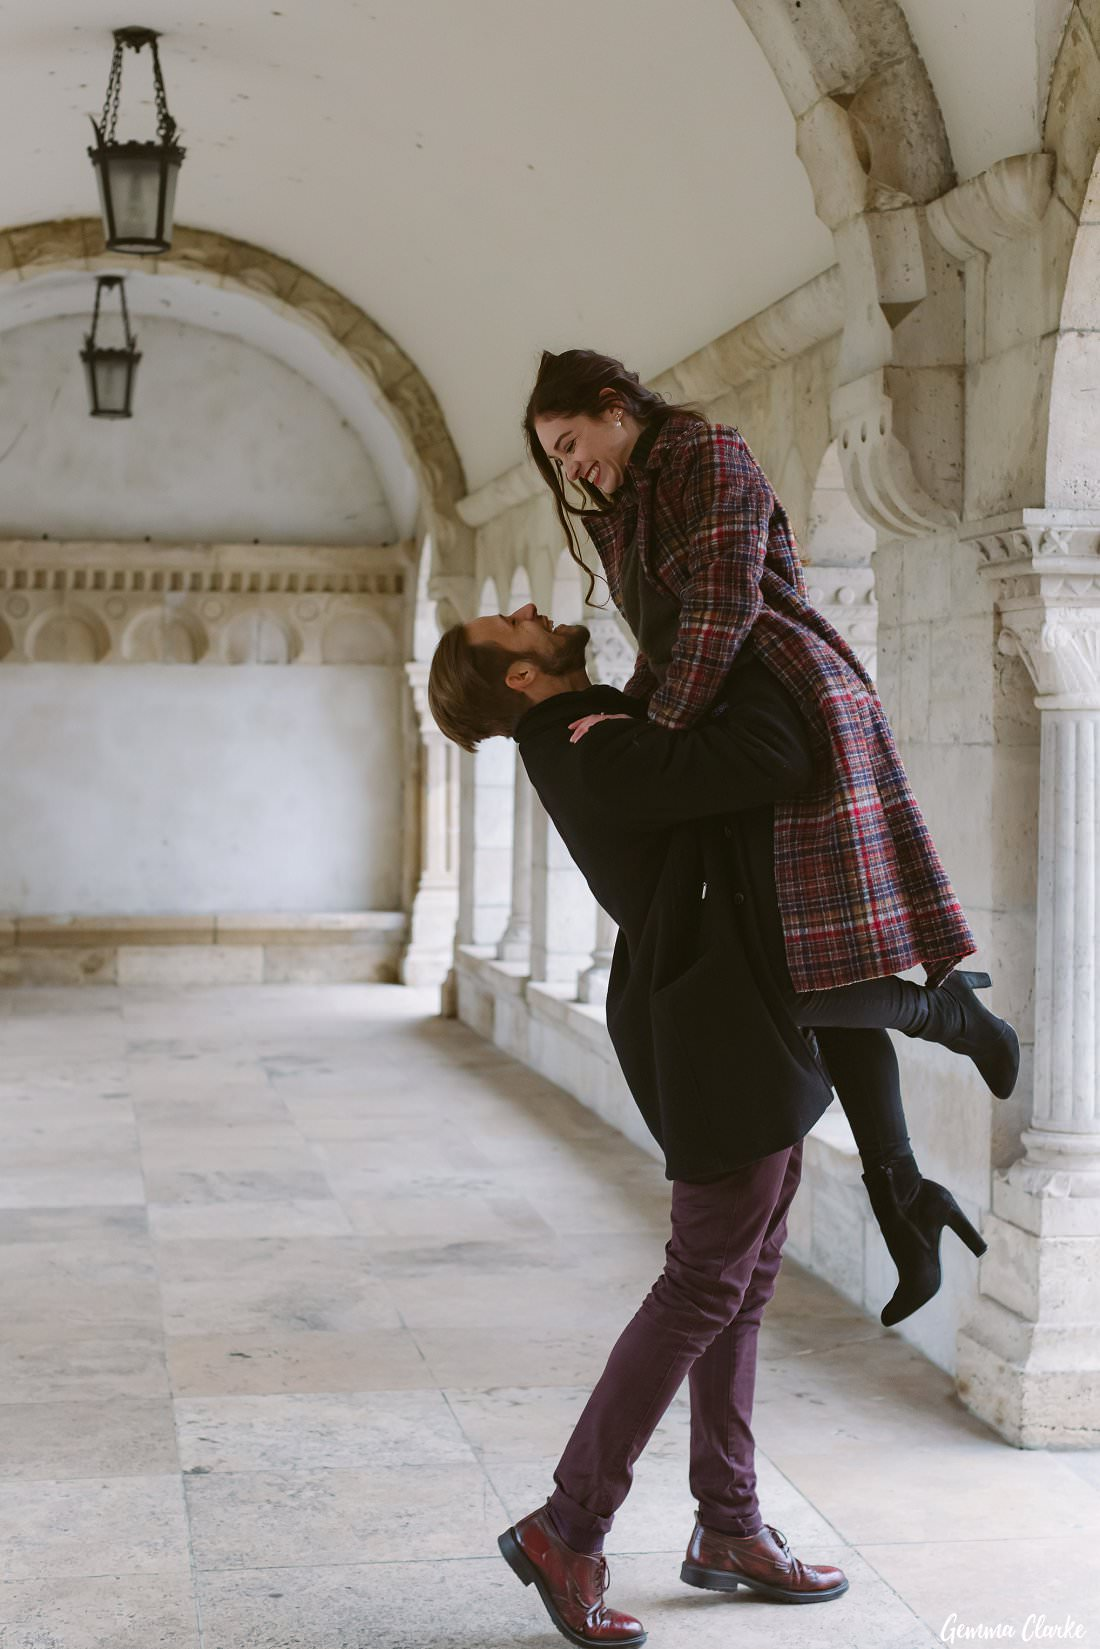 Dancing under the arched walkway of Fisherman's Bastion in Budapest. this couple are so happy!